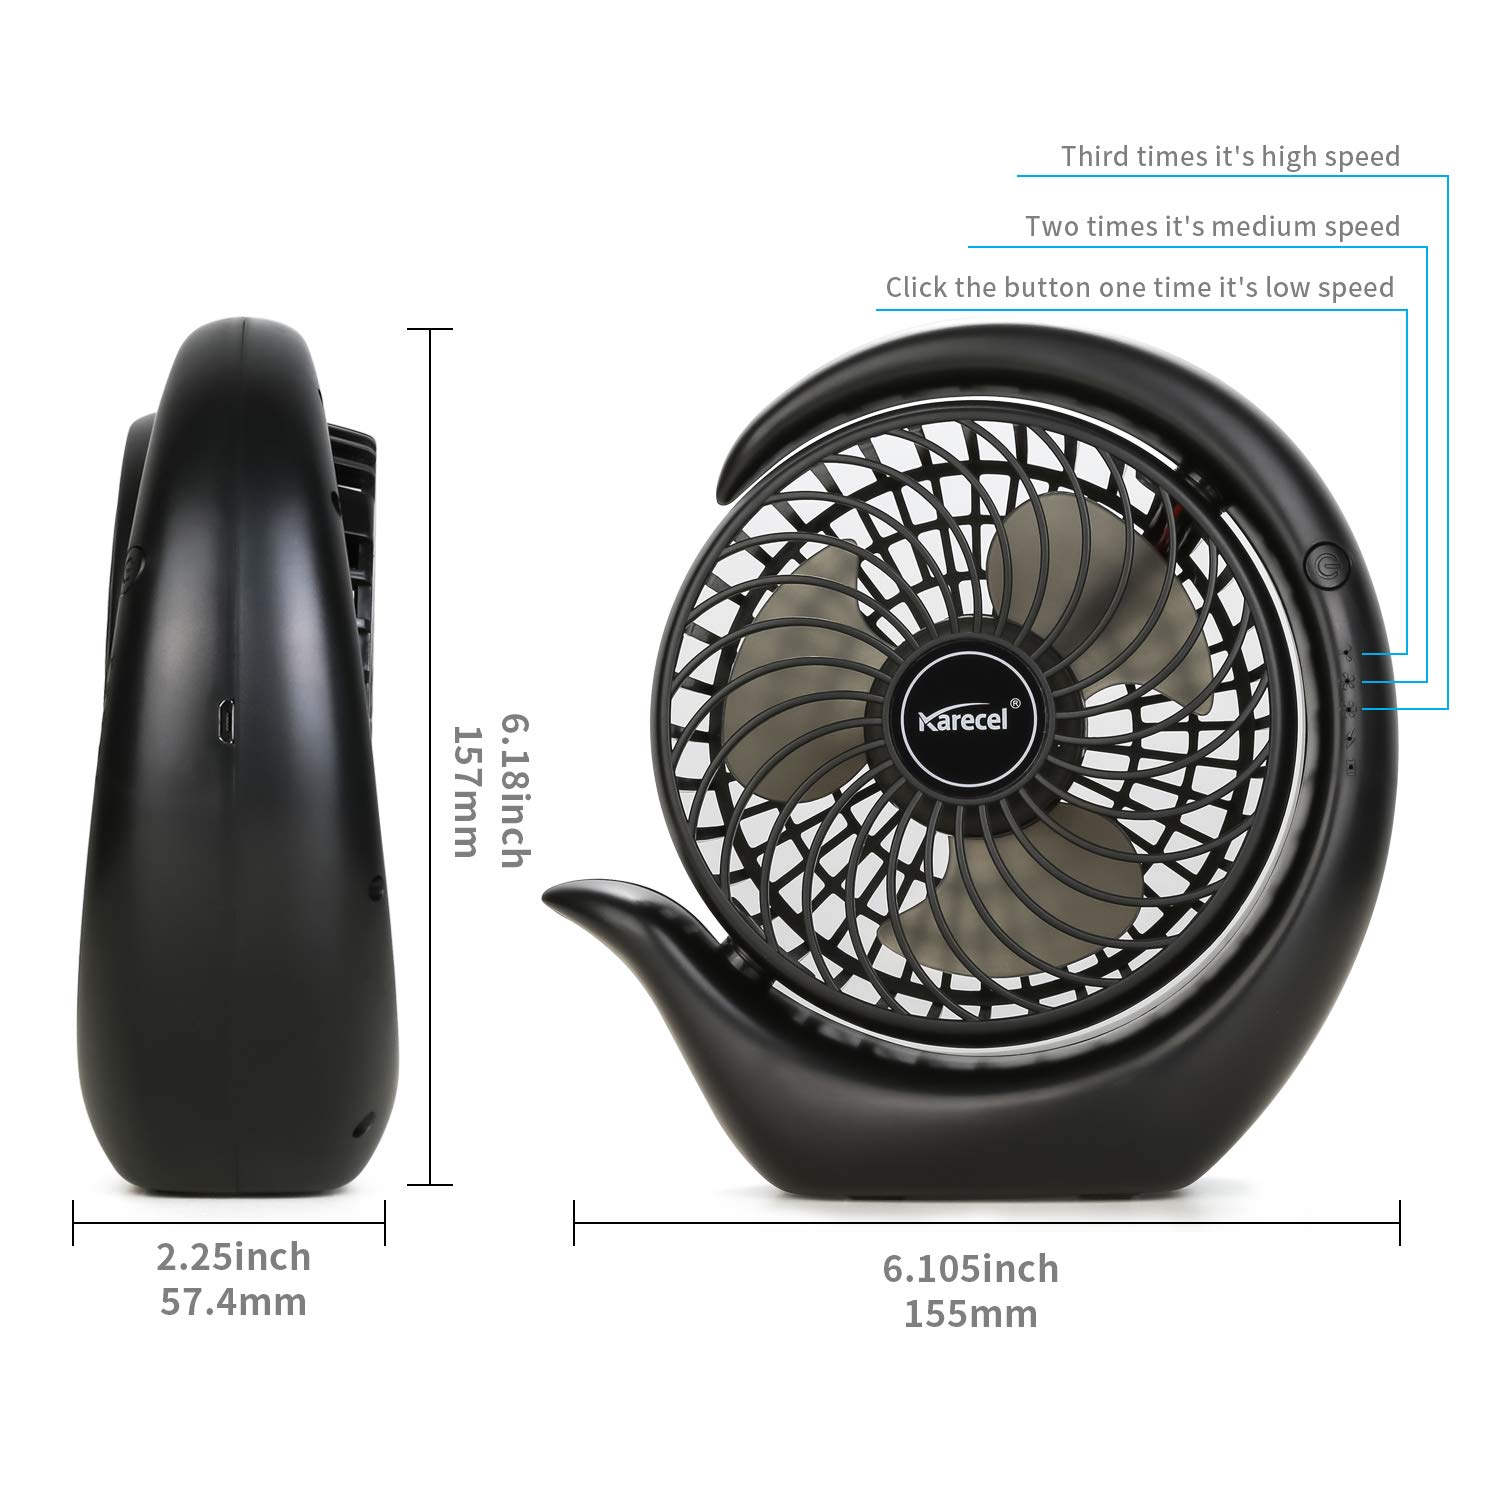 Personal Quiet Strong Wind Desktop Fan for Travel Camping Office Home Long Life Battery /& USB Powered Mini Fan KARECEL Battery Operated Fan Black Rechargeable Fan 3 Speeds Small Desk Portable Fan